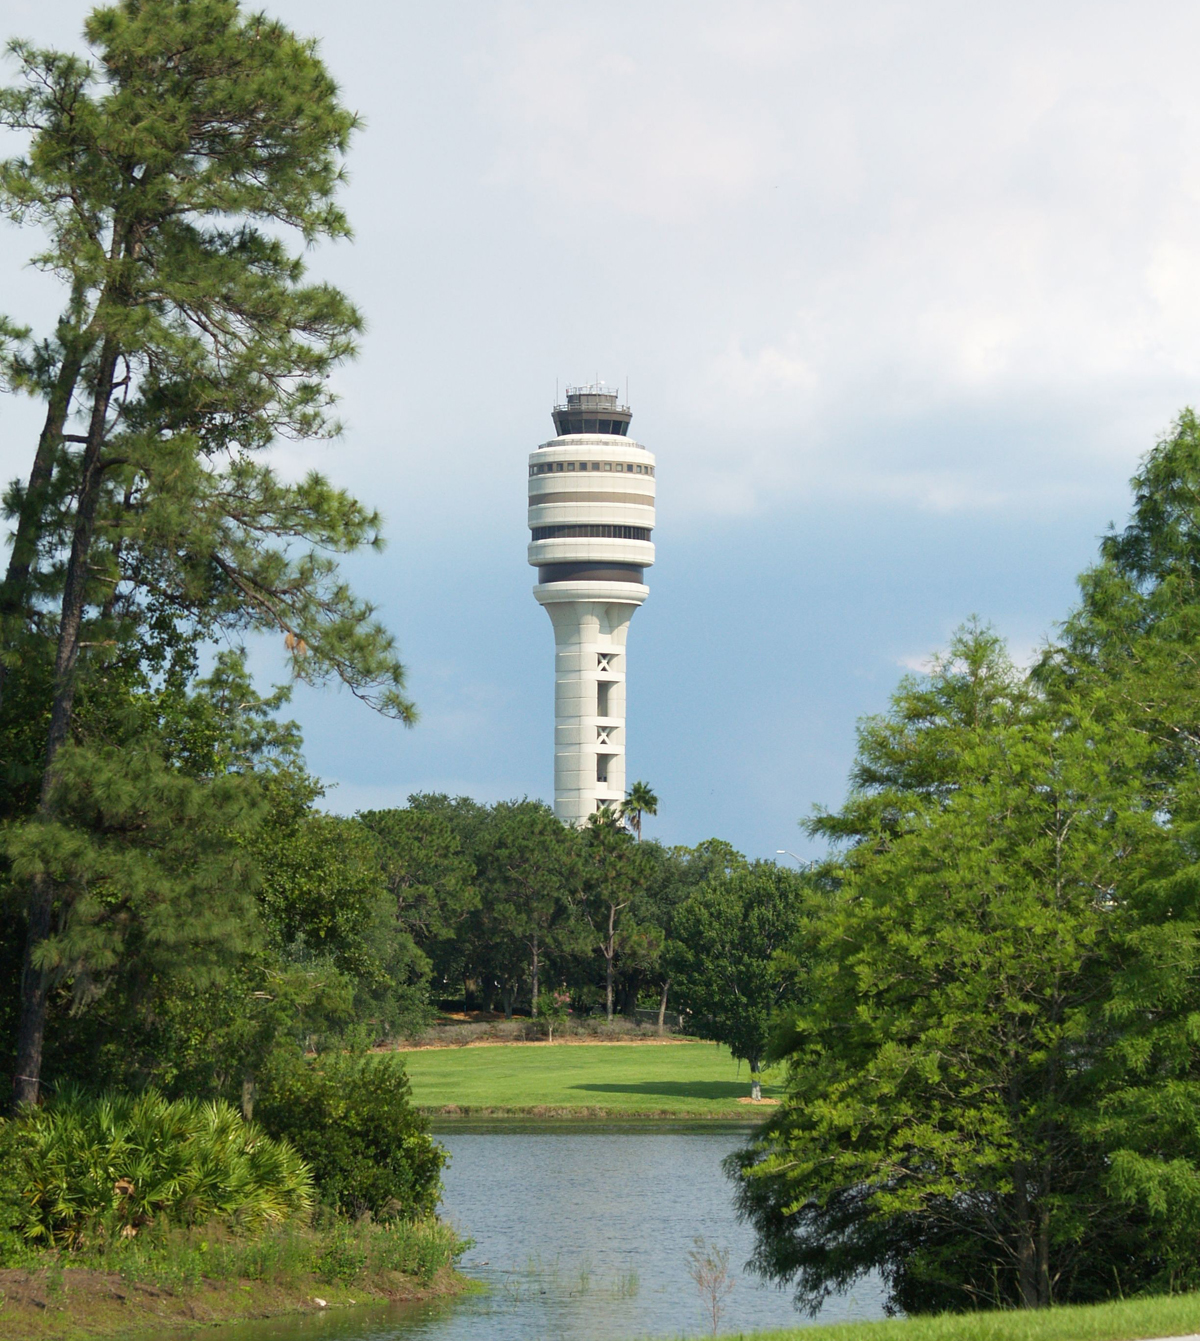 FAA Tower Across Lake